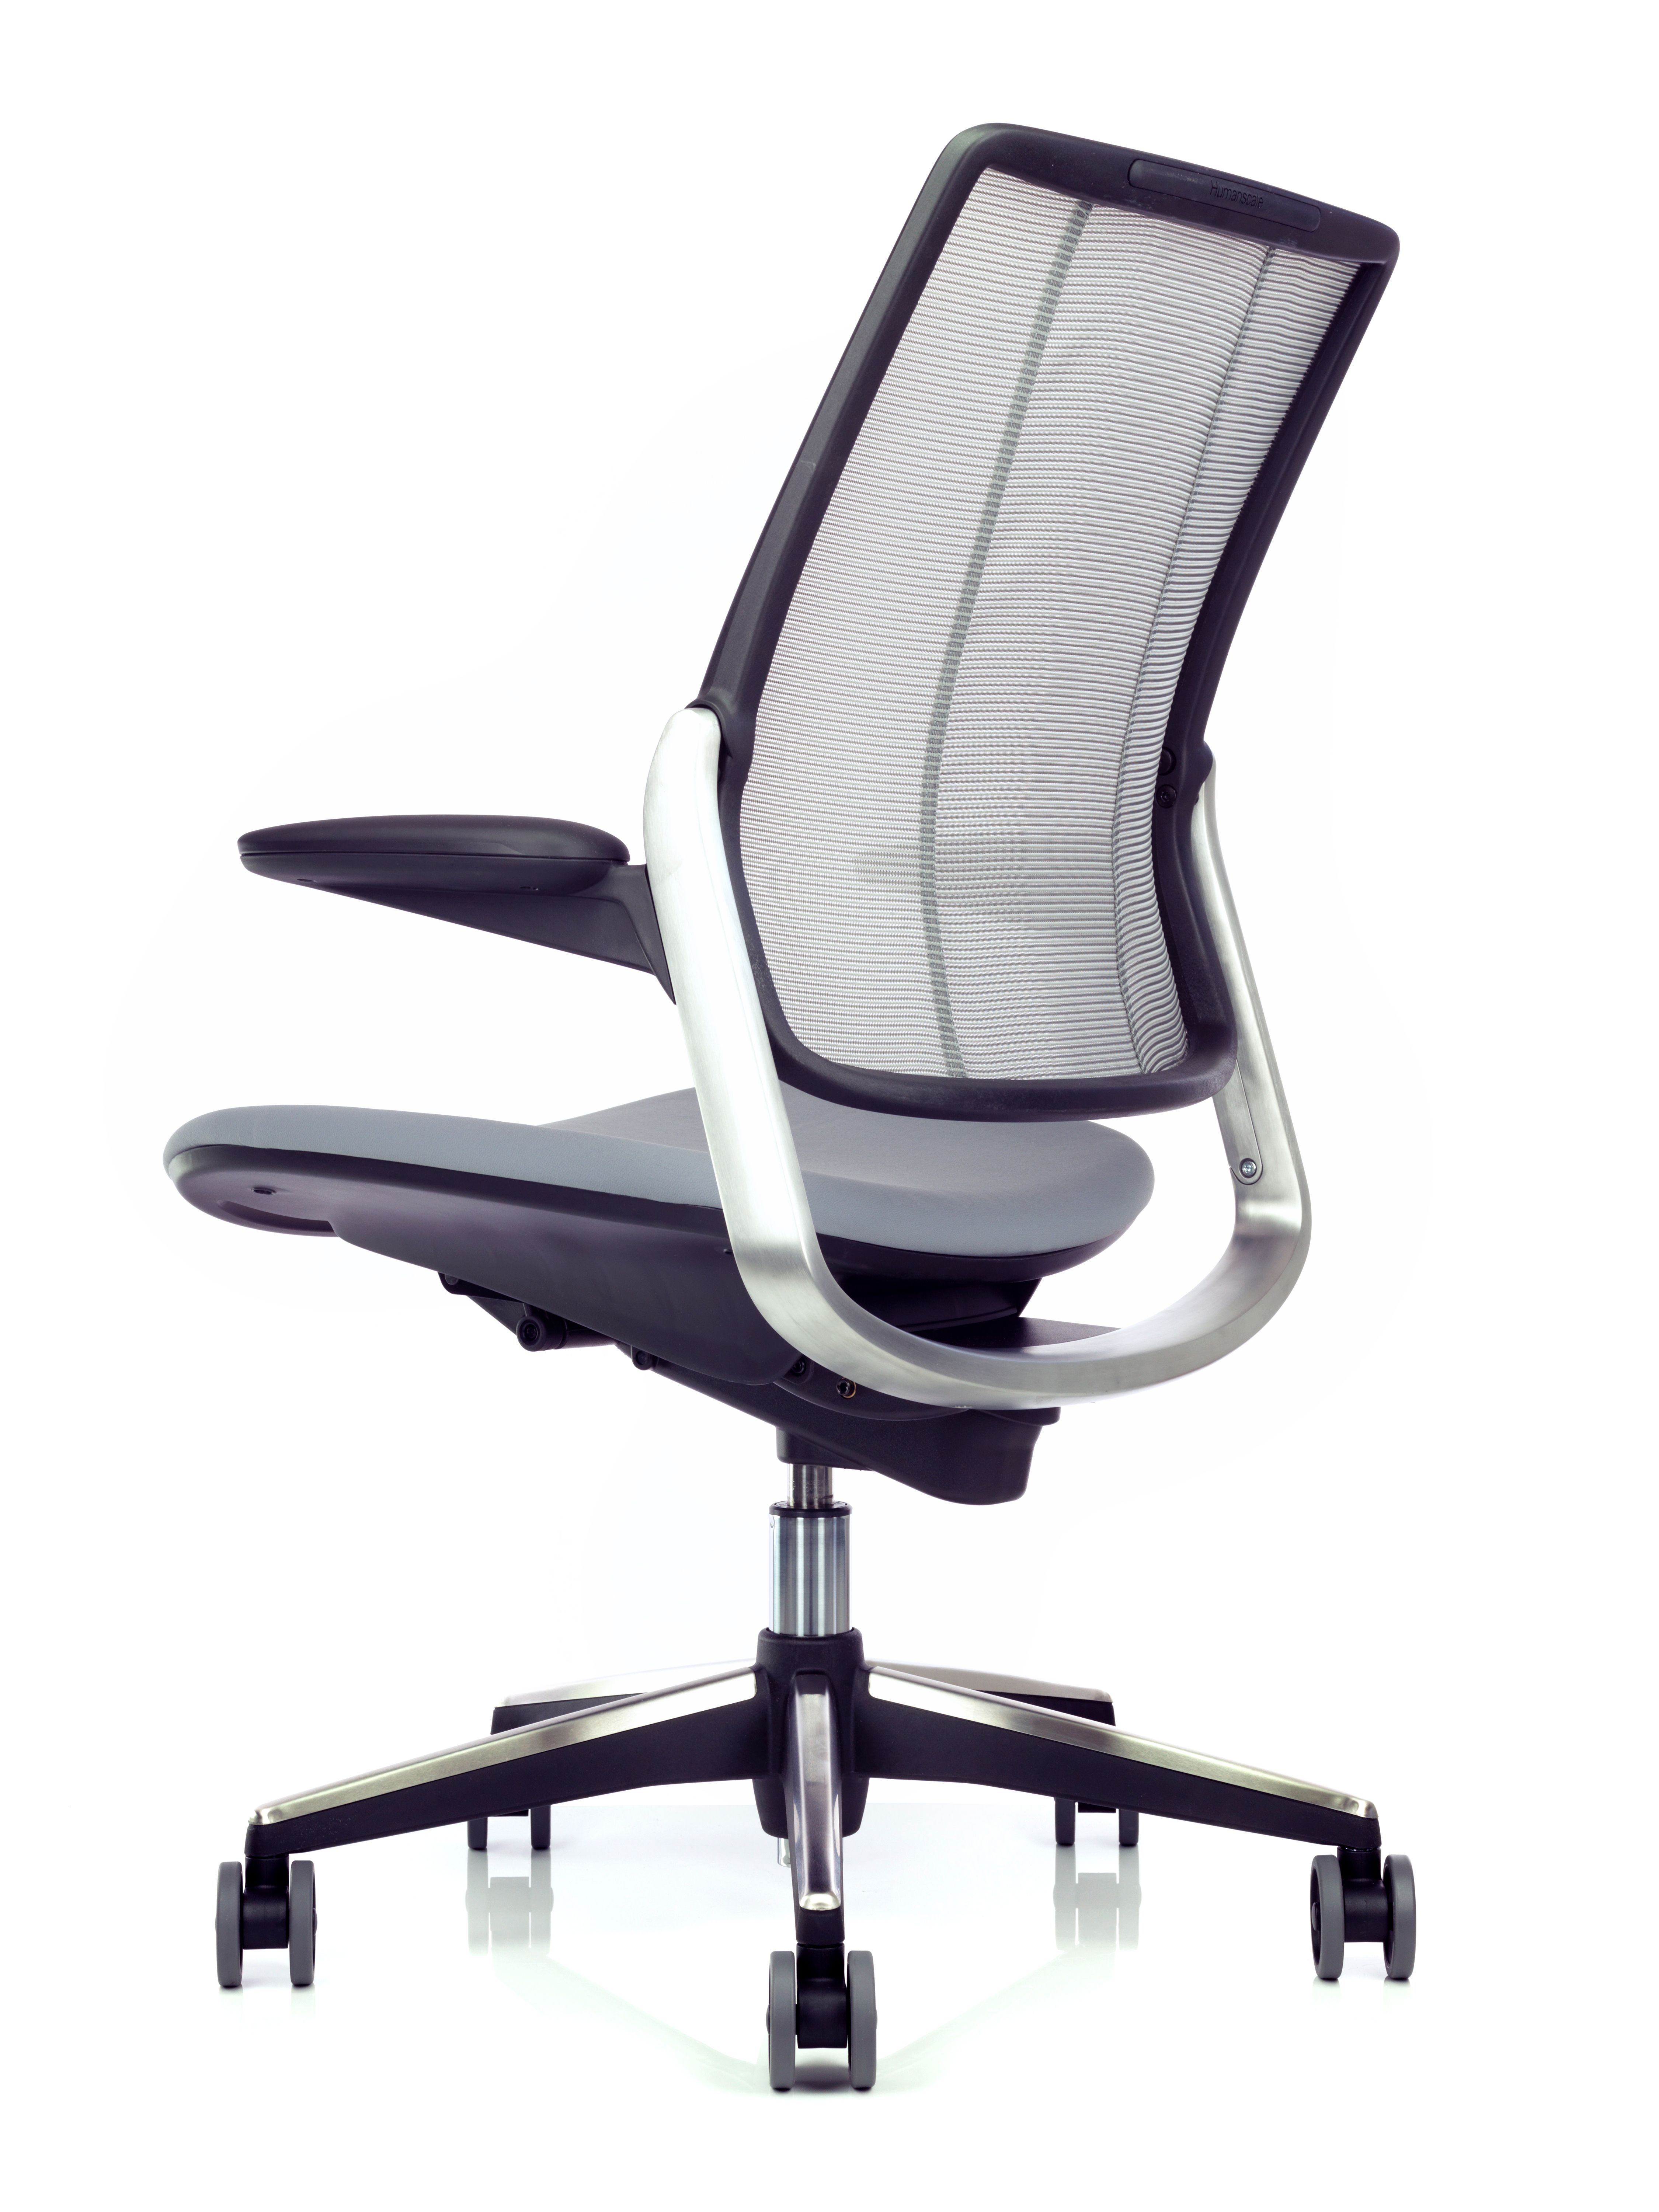 Comfortable Office Chair With Mesh Back That Provides Lumbar